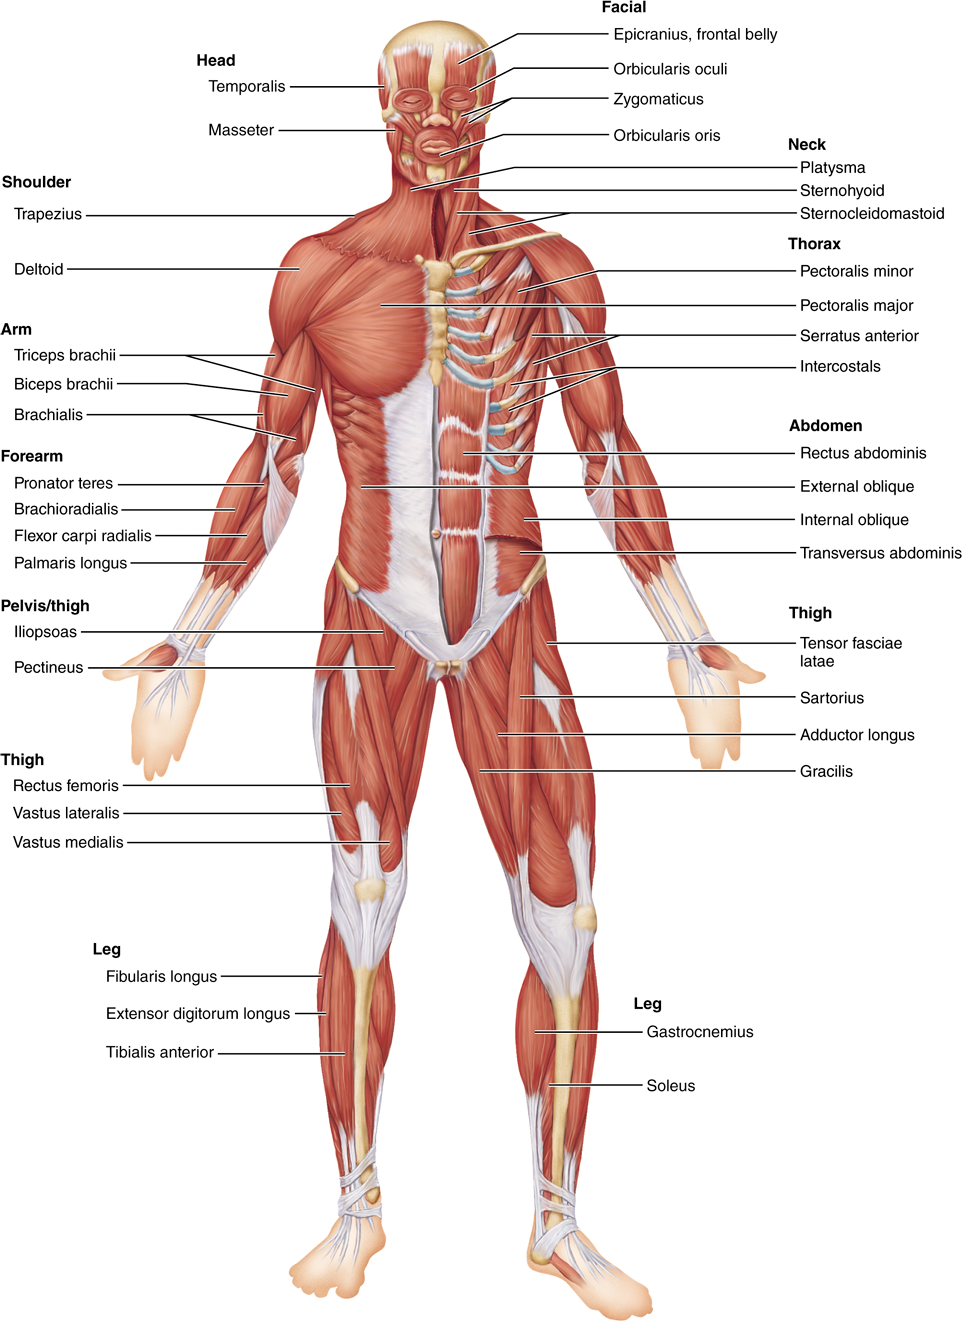 Identification of Human Muscles | anatomy ref | Pinterest